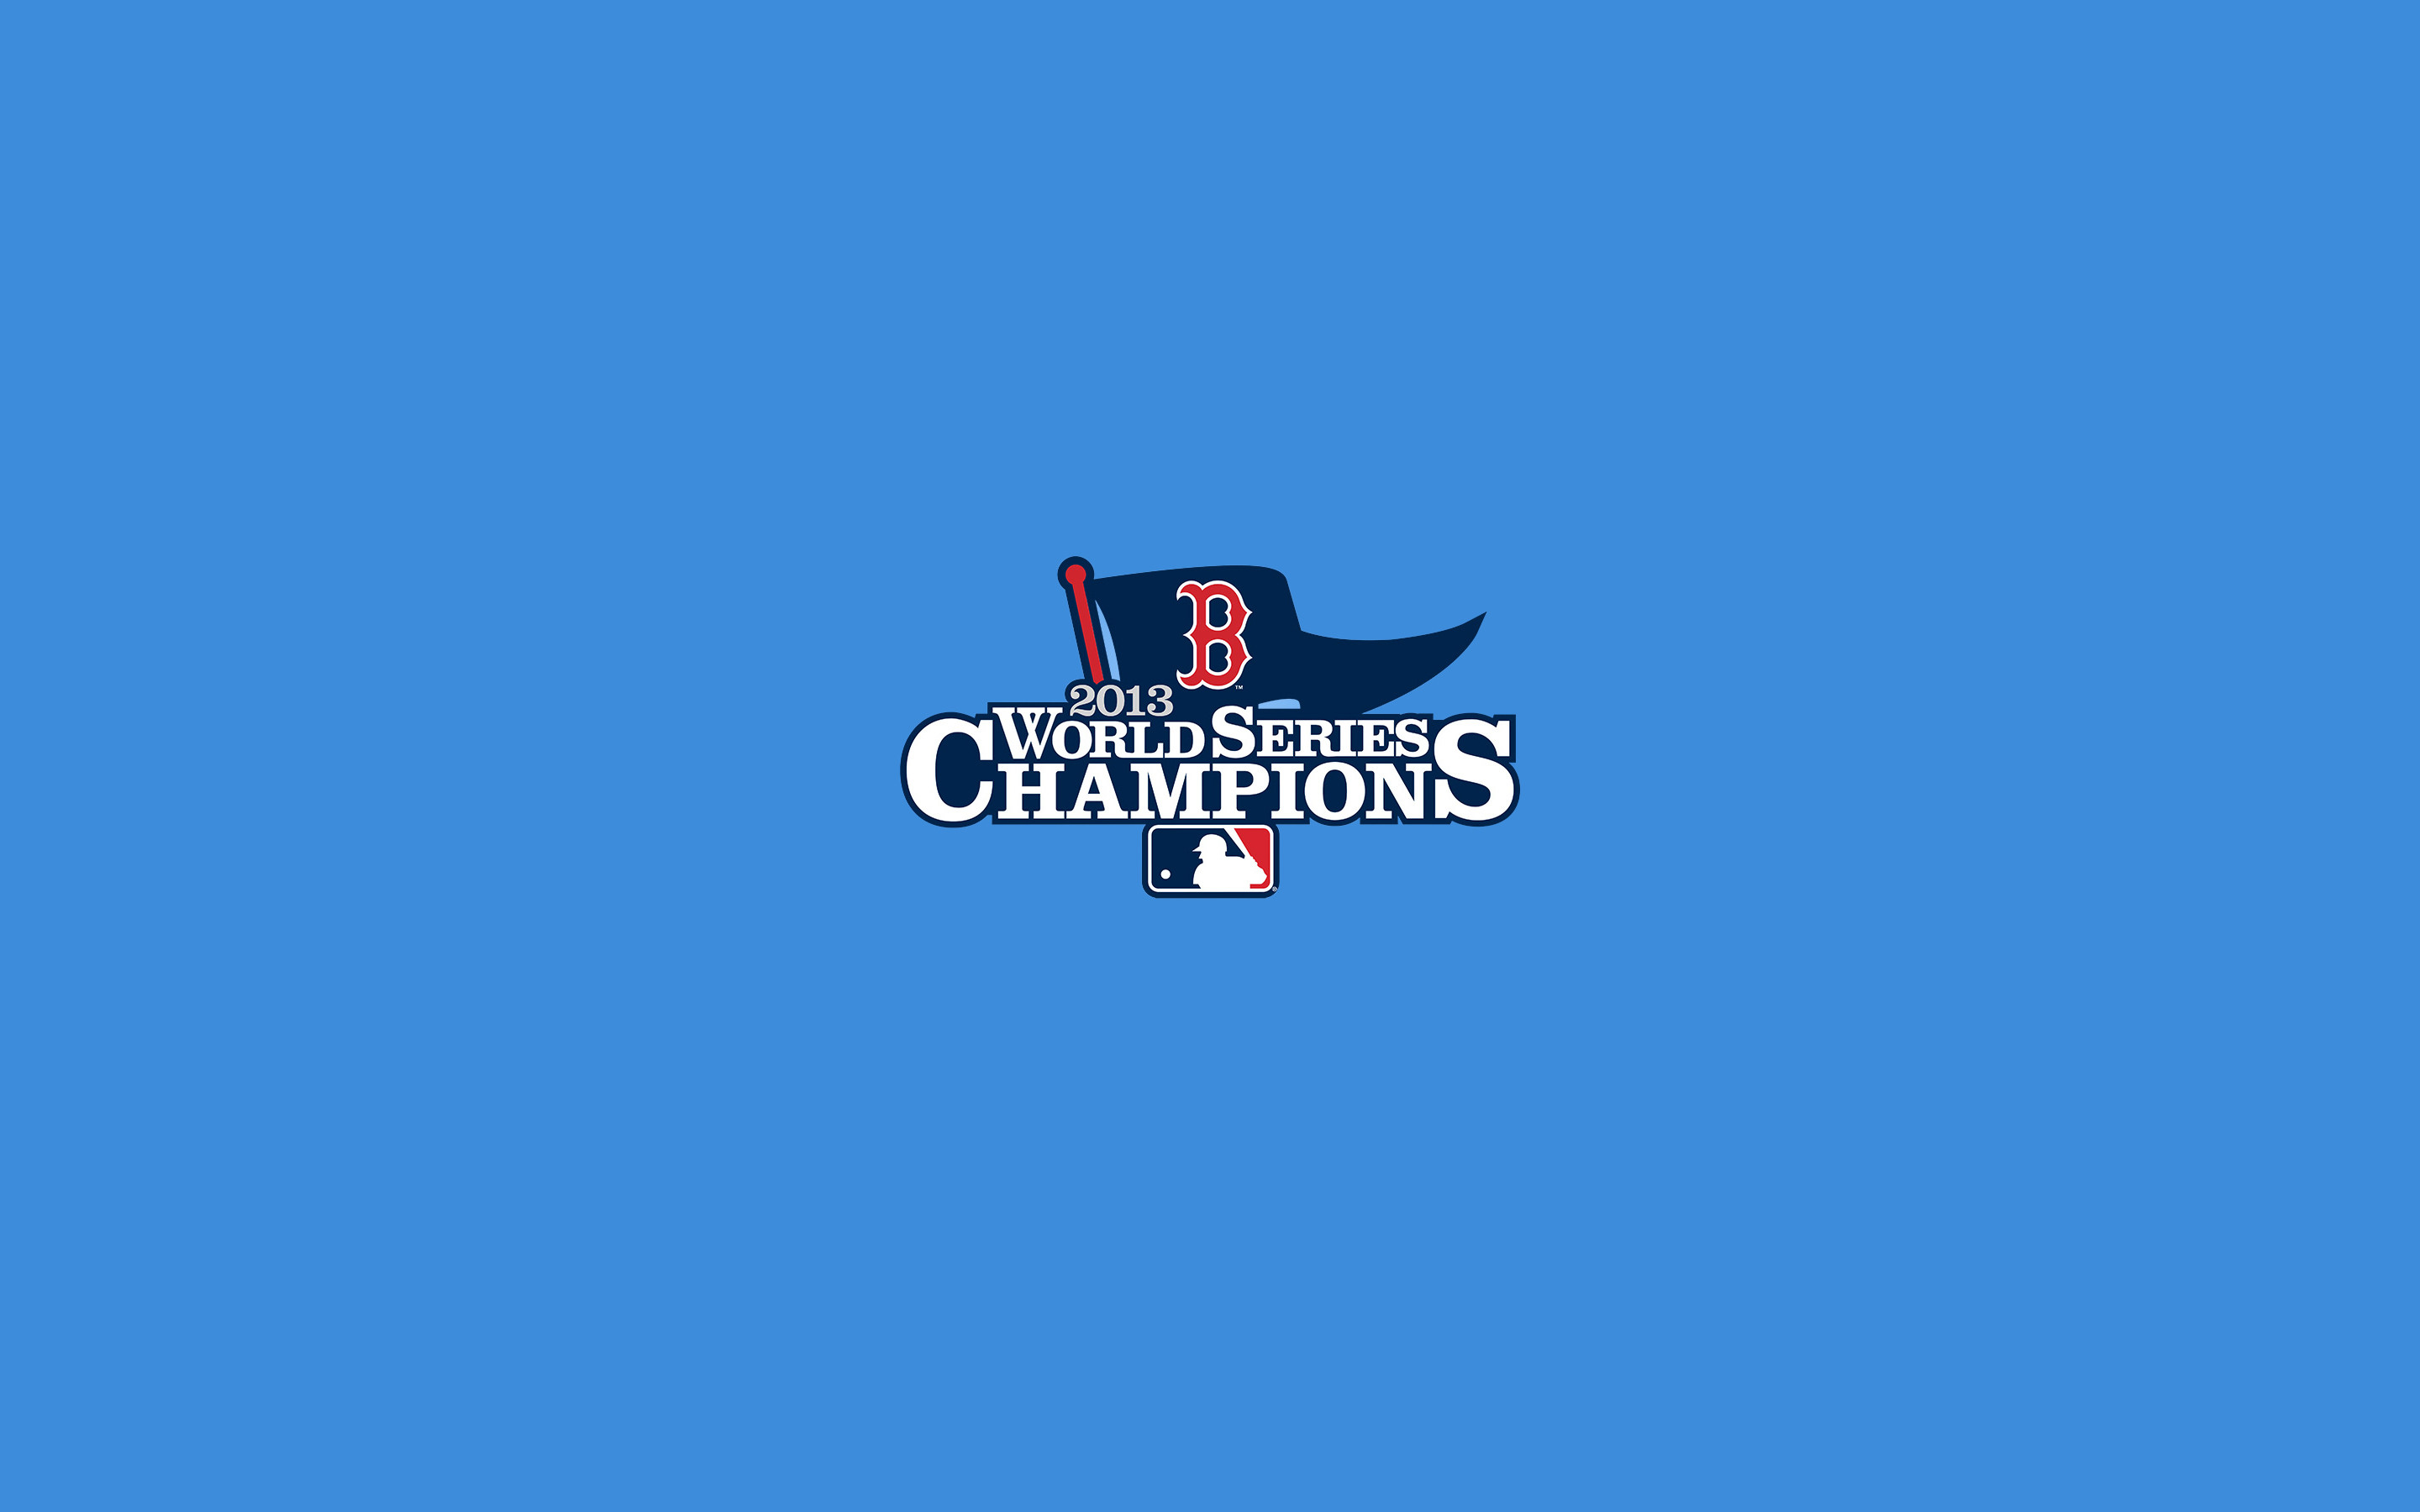 www.fanpop.com/clubs/boston-red-sox/images/